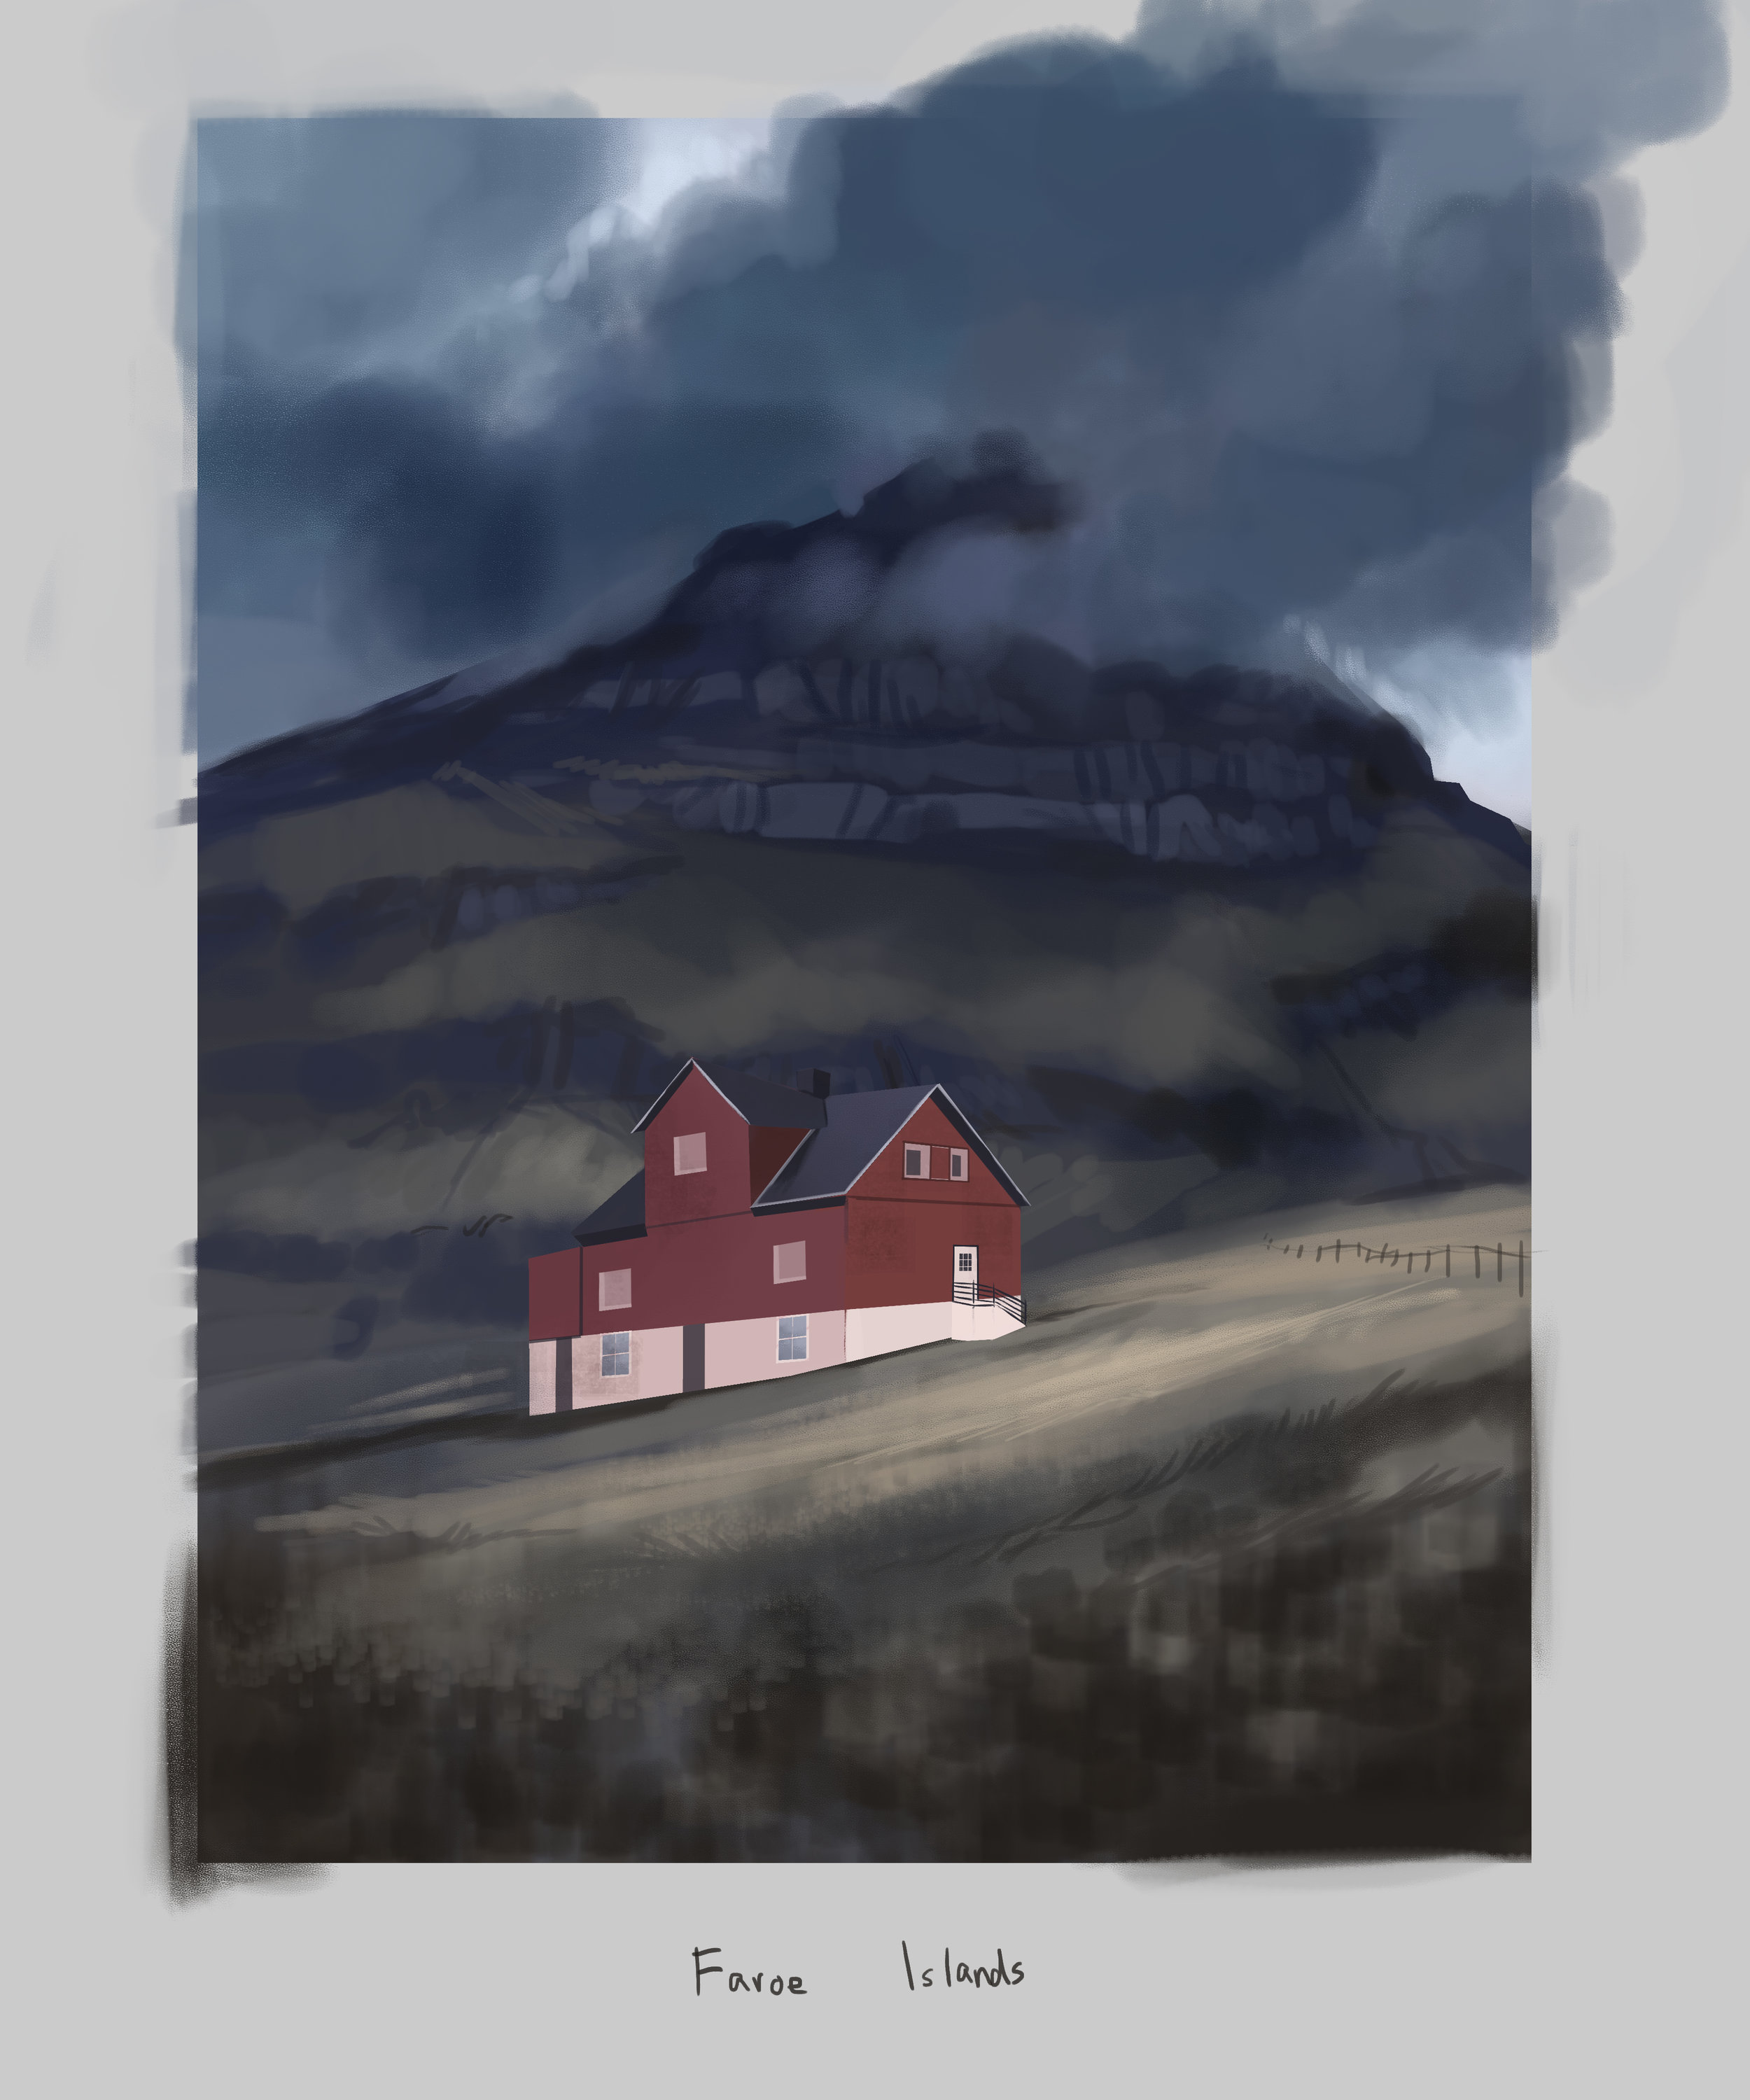 landscape study - faroe islands.jpg